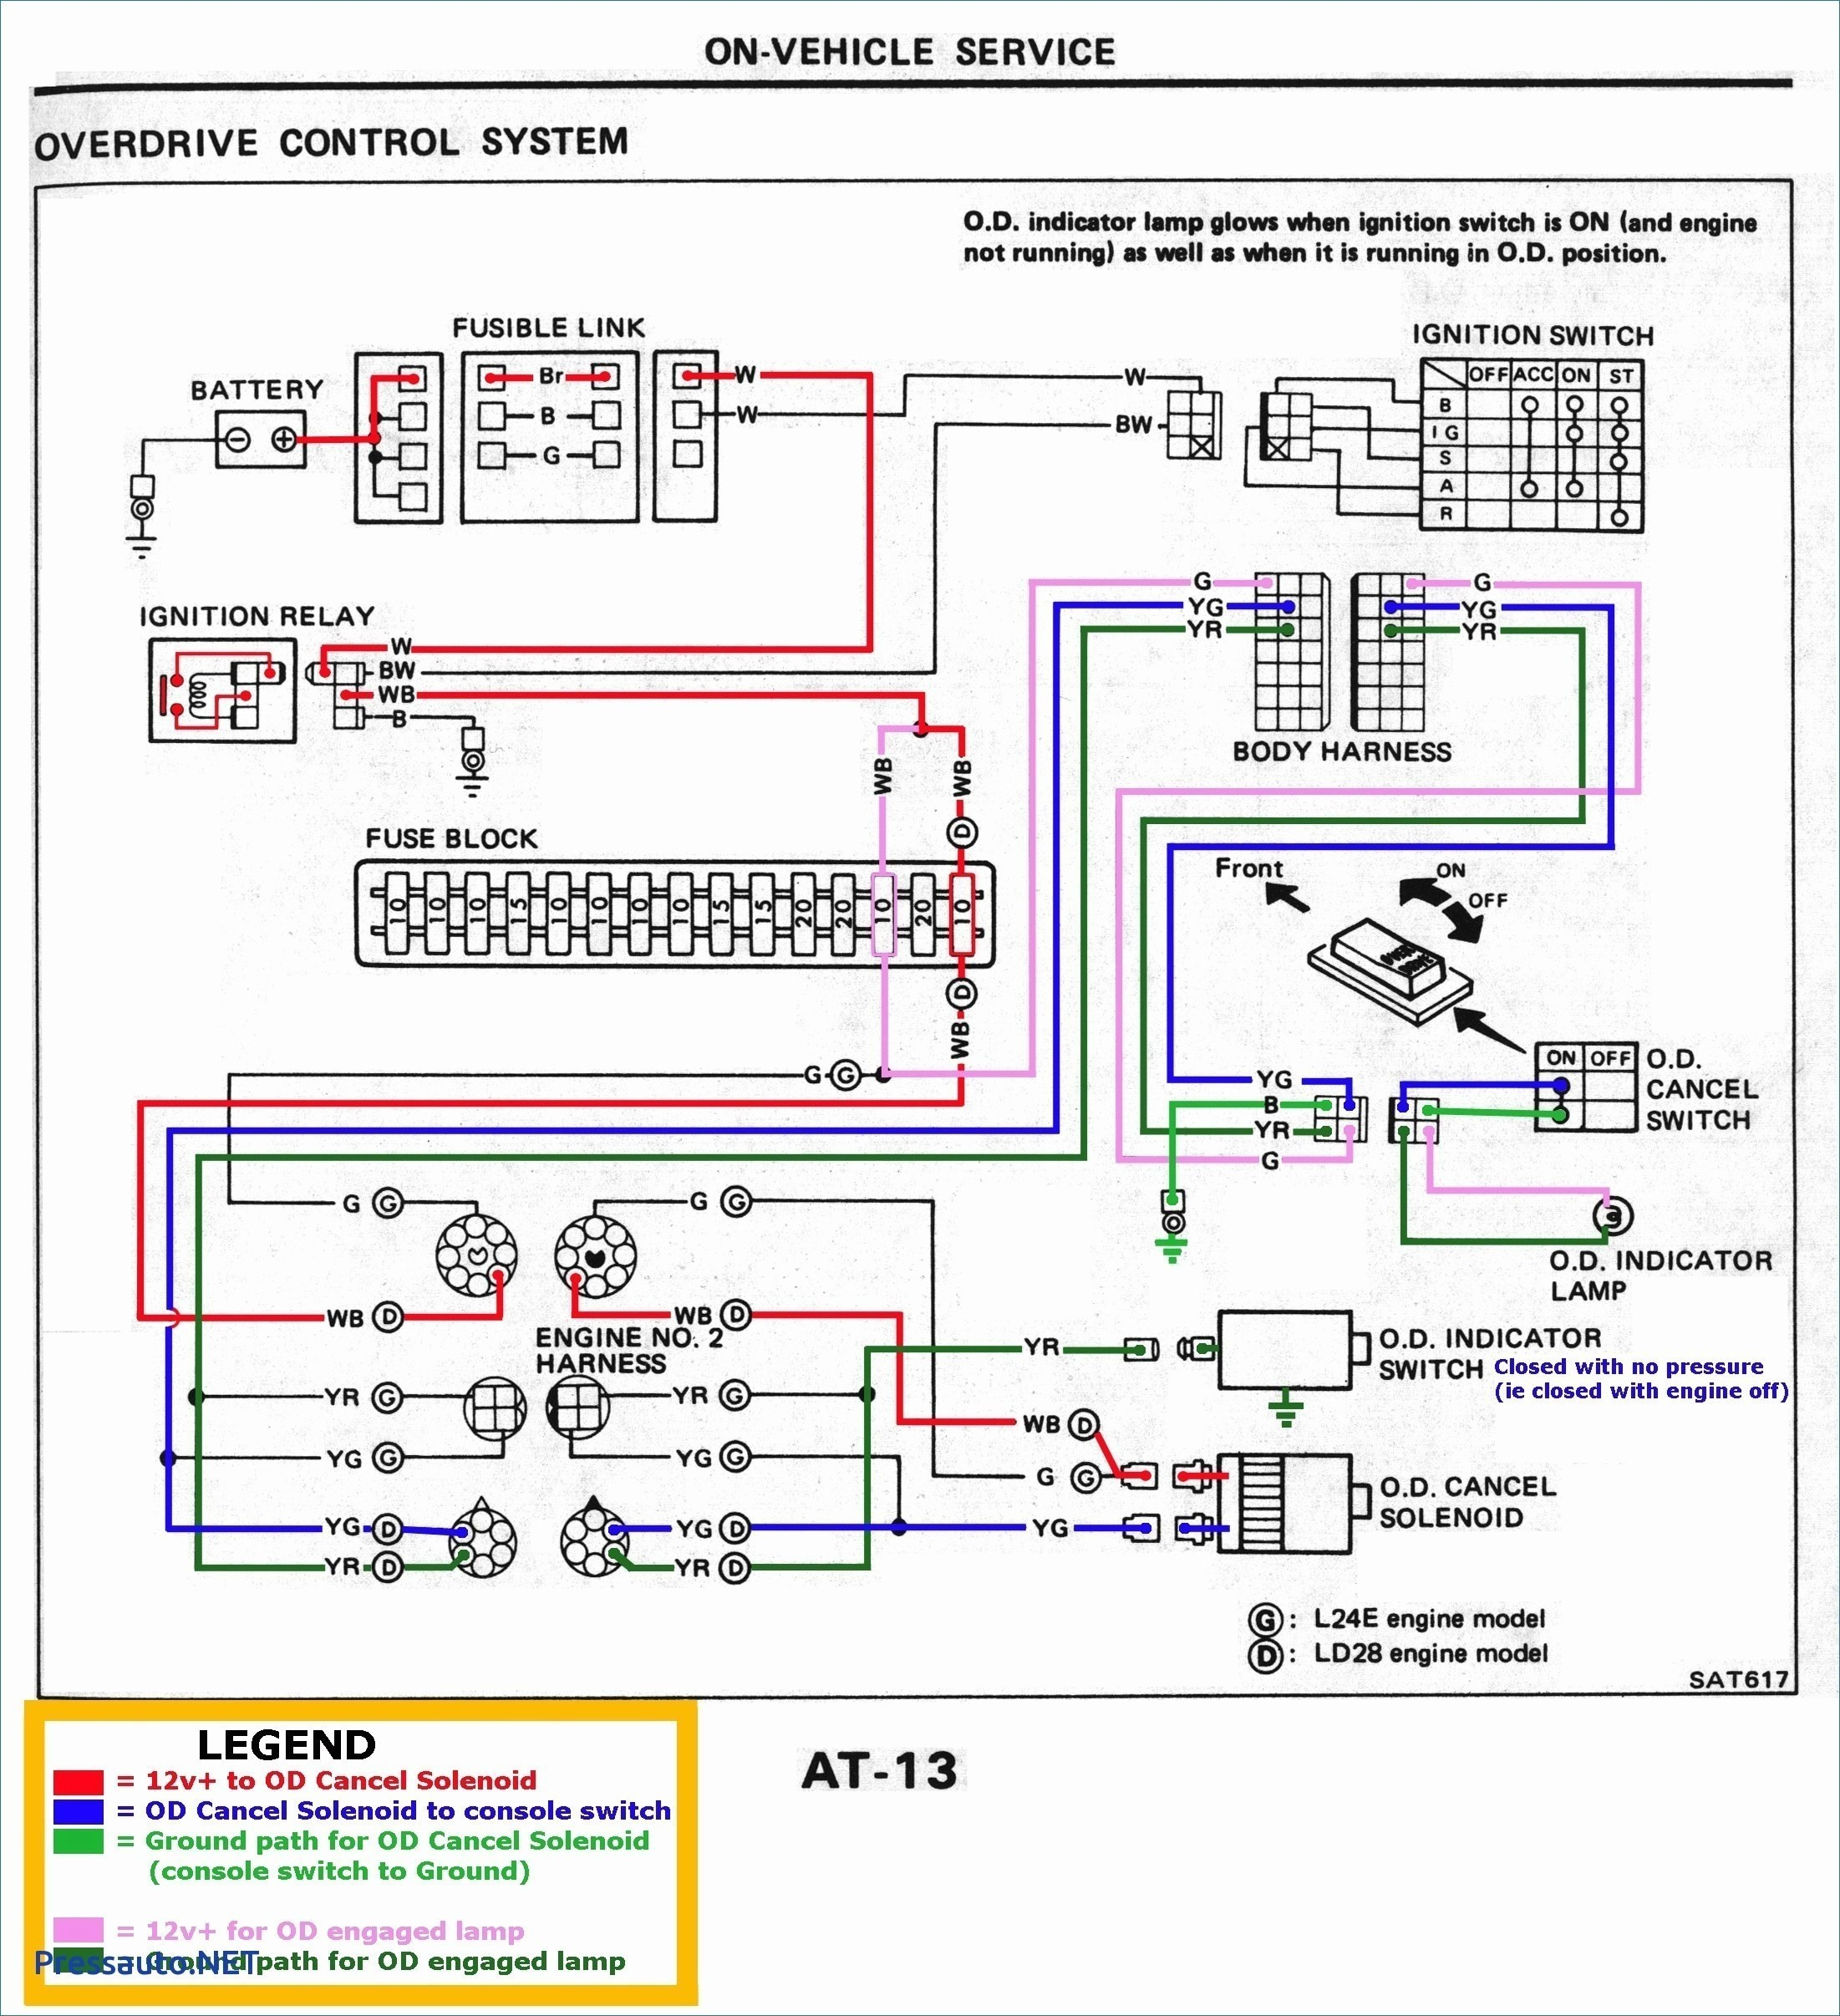 Coil Ignition System Diagram E36 Ignition Switch Wiring Diagram Best Wiring Diagram for Ignition Of Coil Ignition System Diagram Wiring Diagram the Ignition System Valid Ignition Switch Wiring